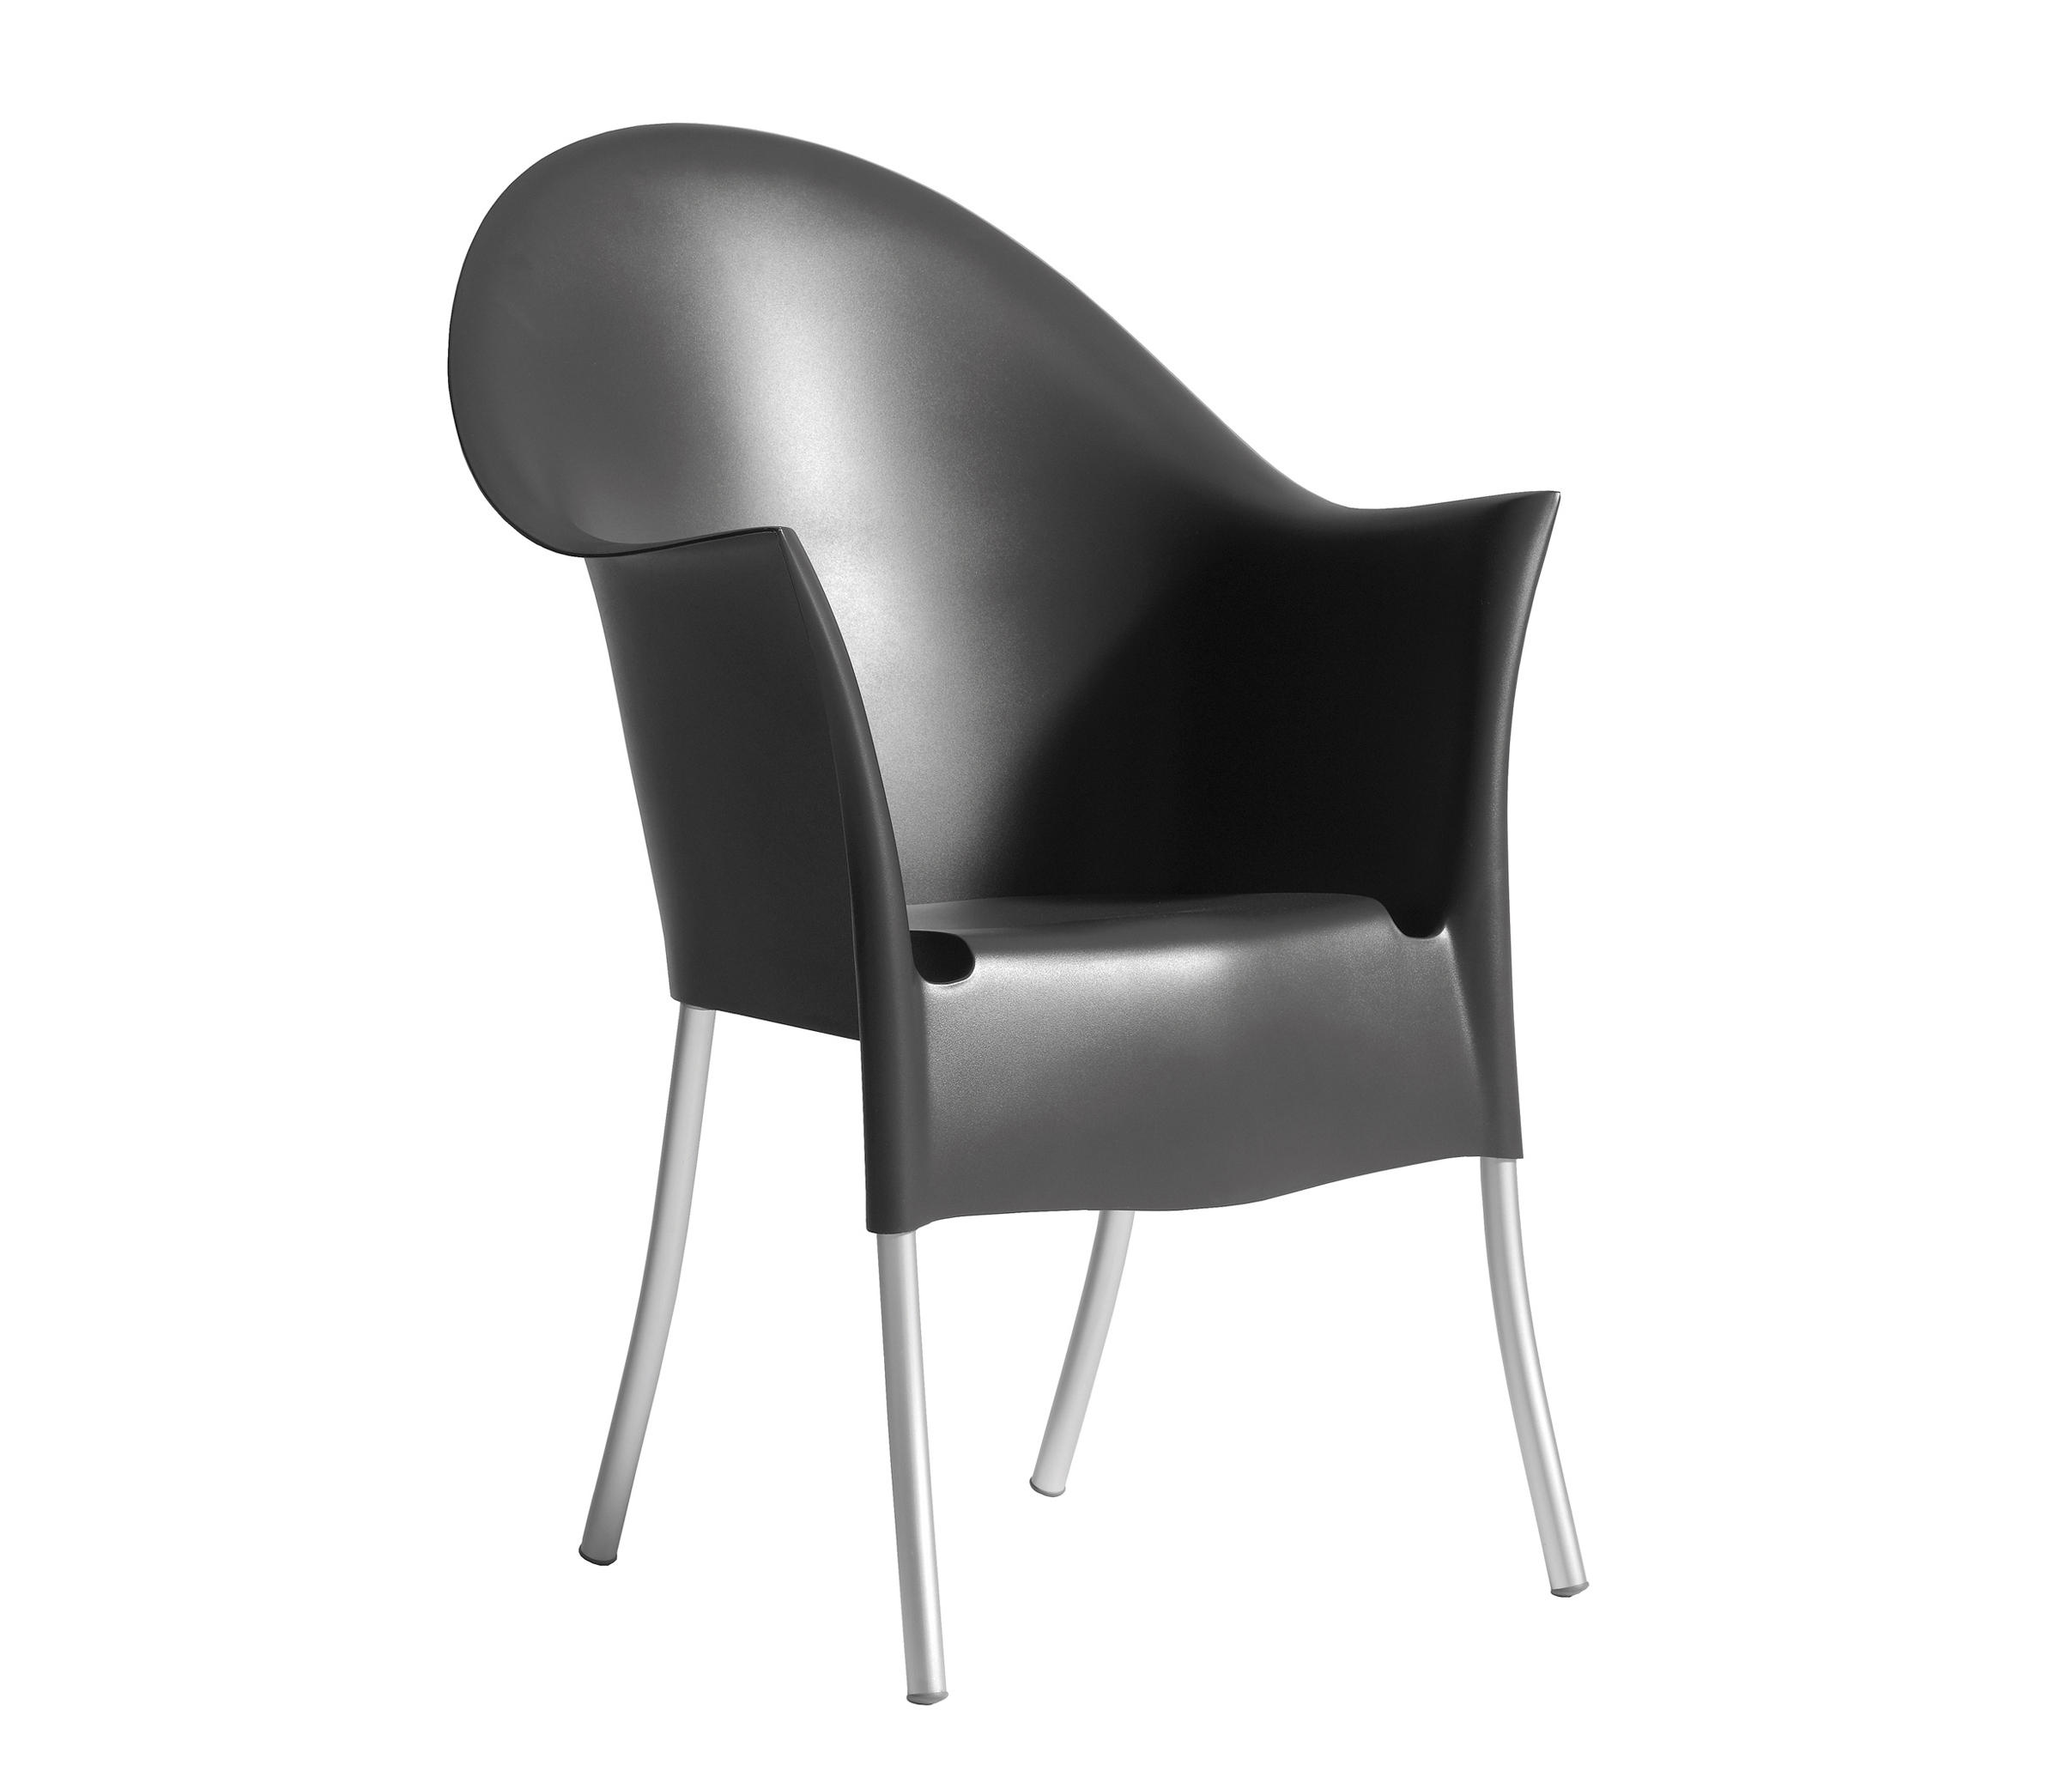 Lord yo chairs from driade architonic lord yo by driade chairs stopboris Image collections